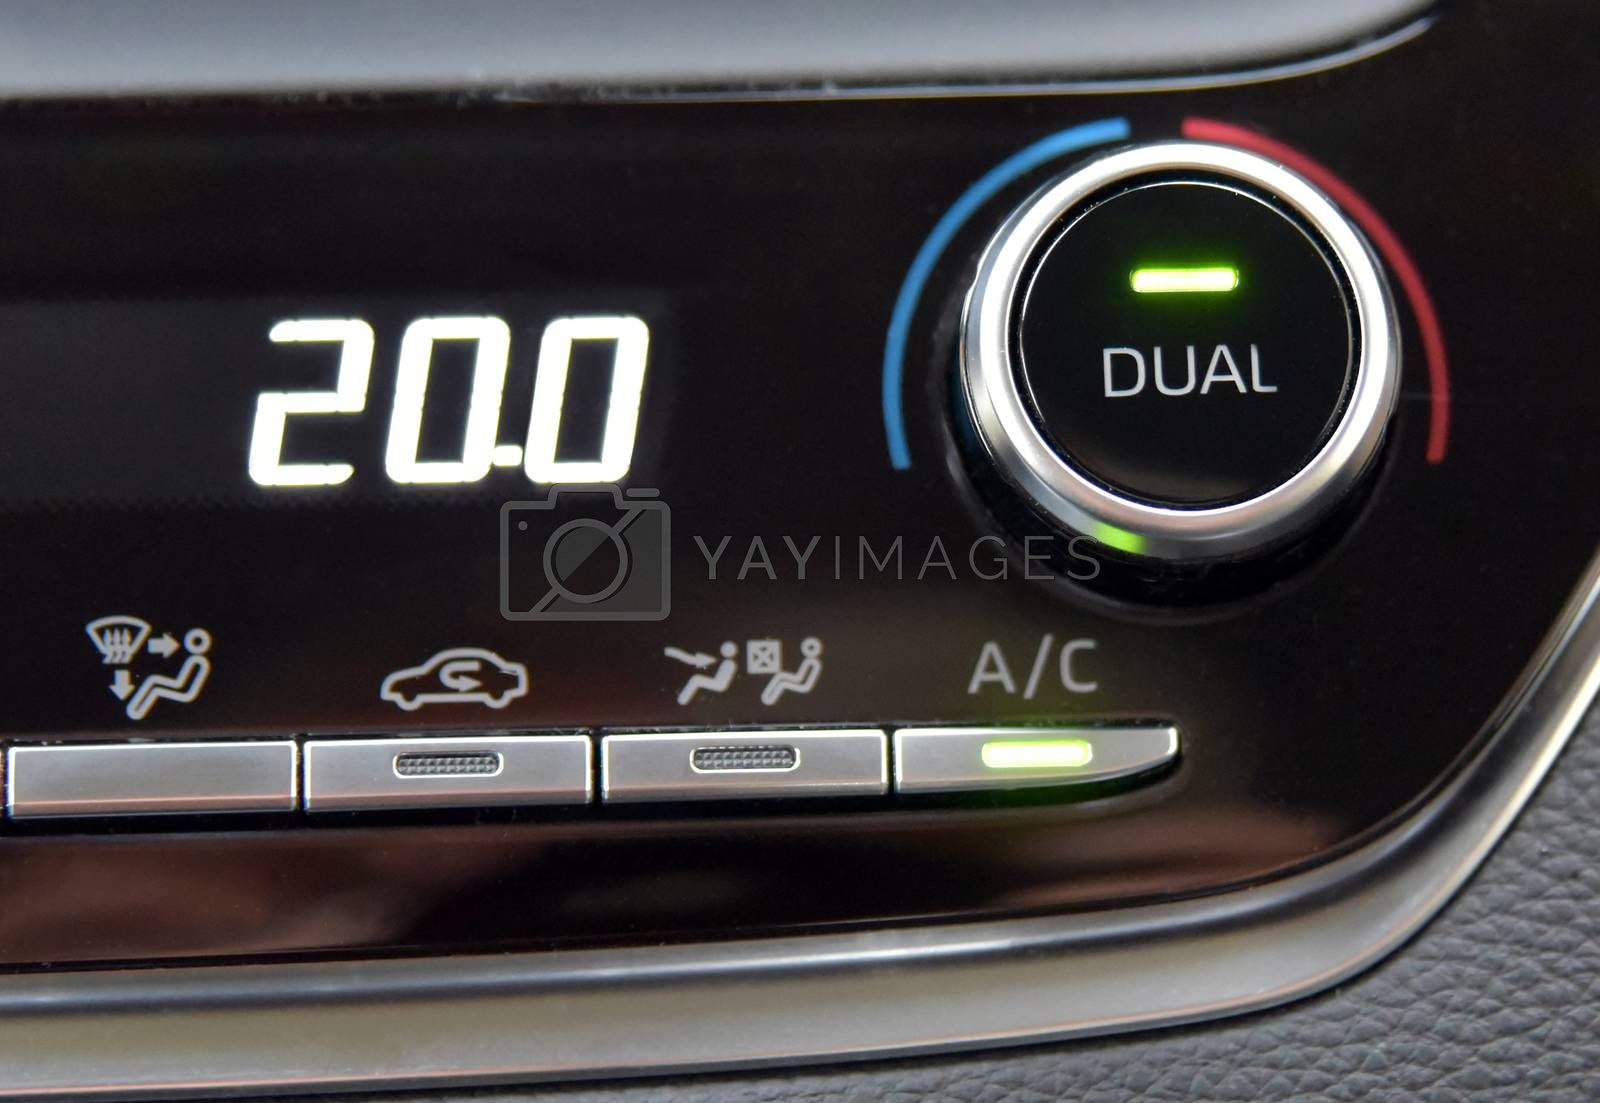 Automatic Car Air Conditioner by aselsa